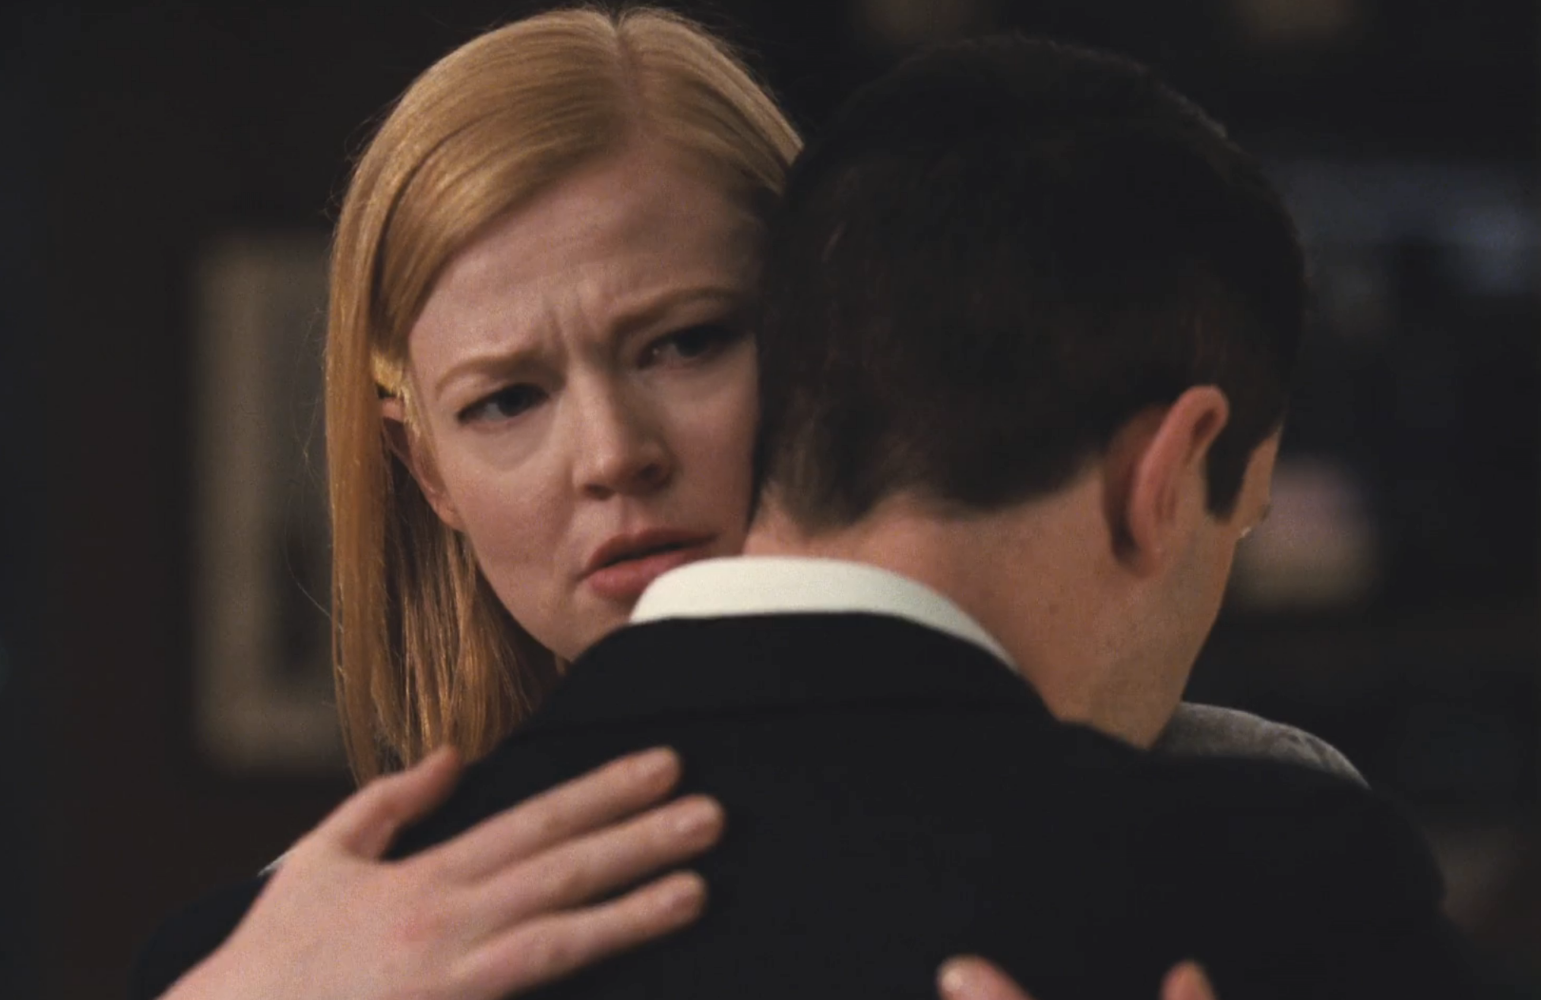 Shiv (Sarah Snook) and Kendall (Jeremy Strong) share a tender moment in Sunday's episode of Succession. (Photo: HBO)